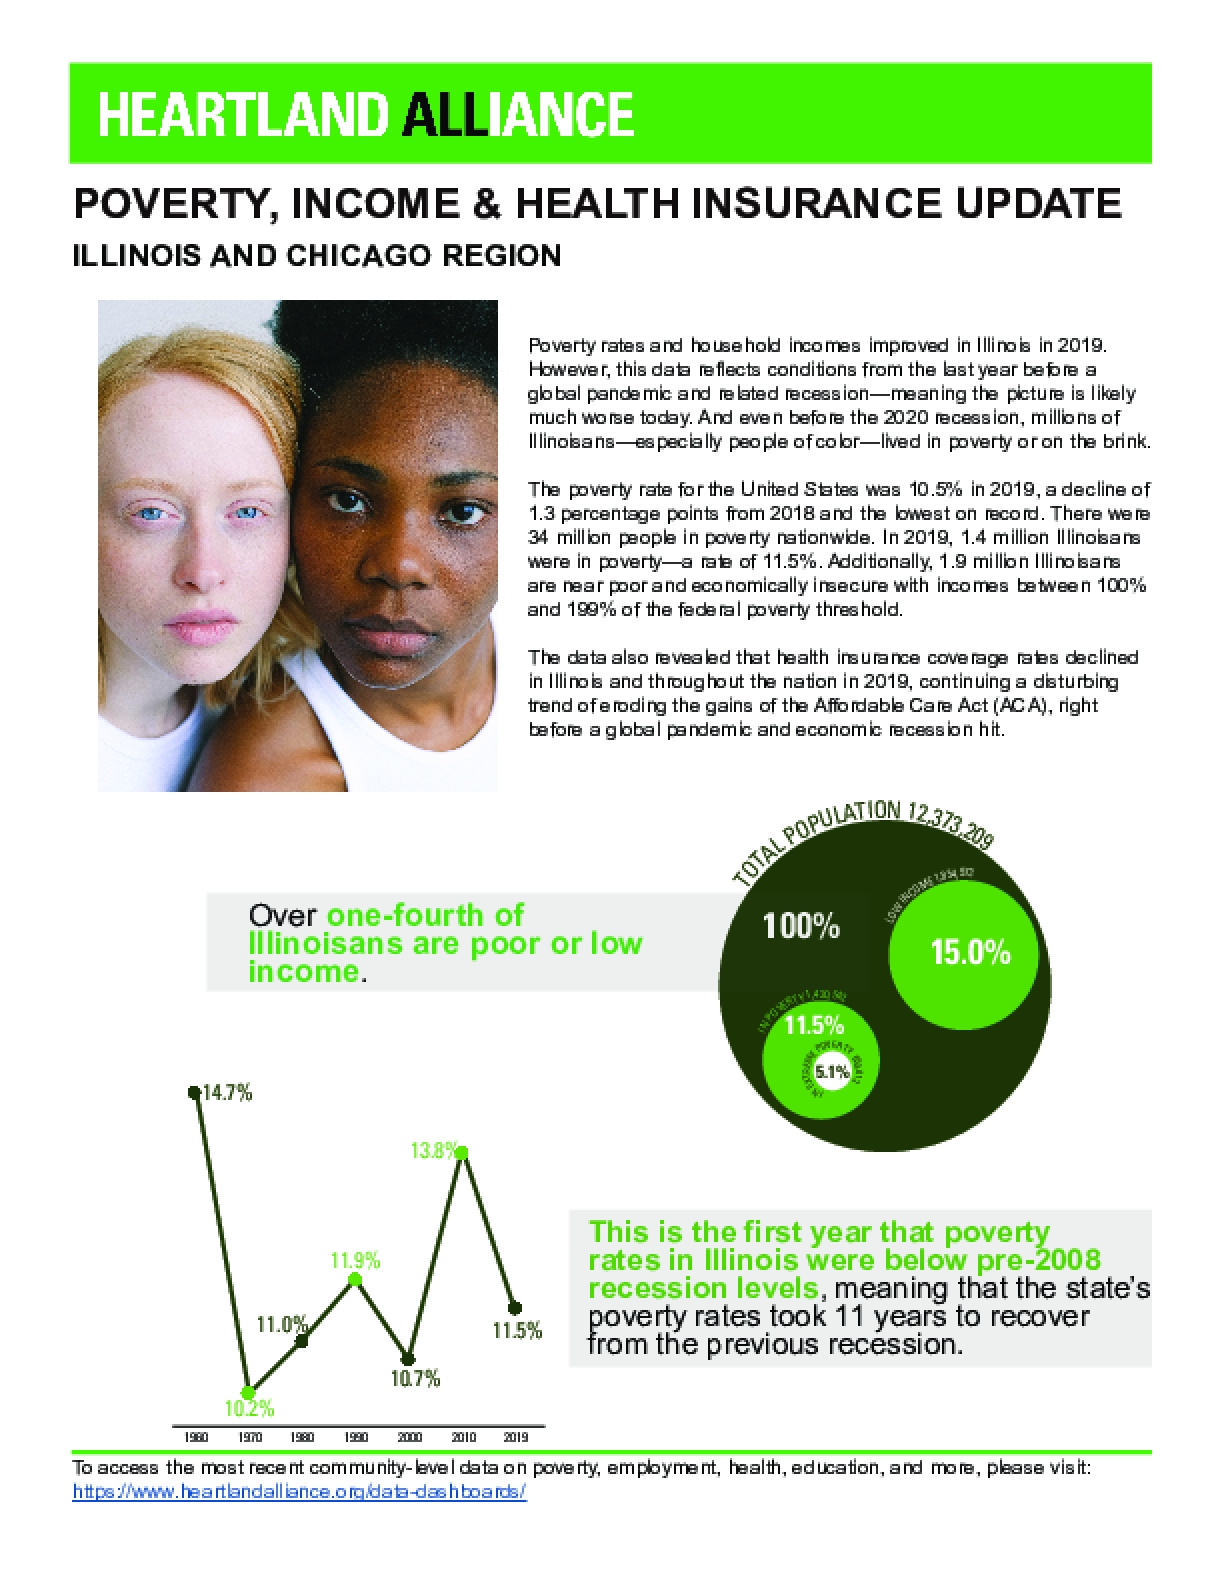 Poverty, Income & Health Insurance Update: Illinois and Chicago Region